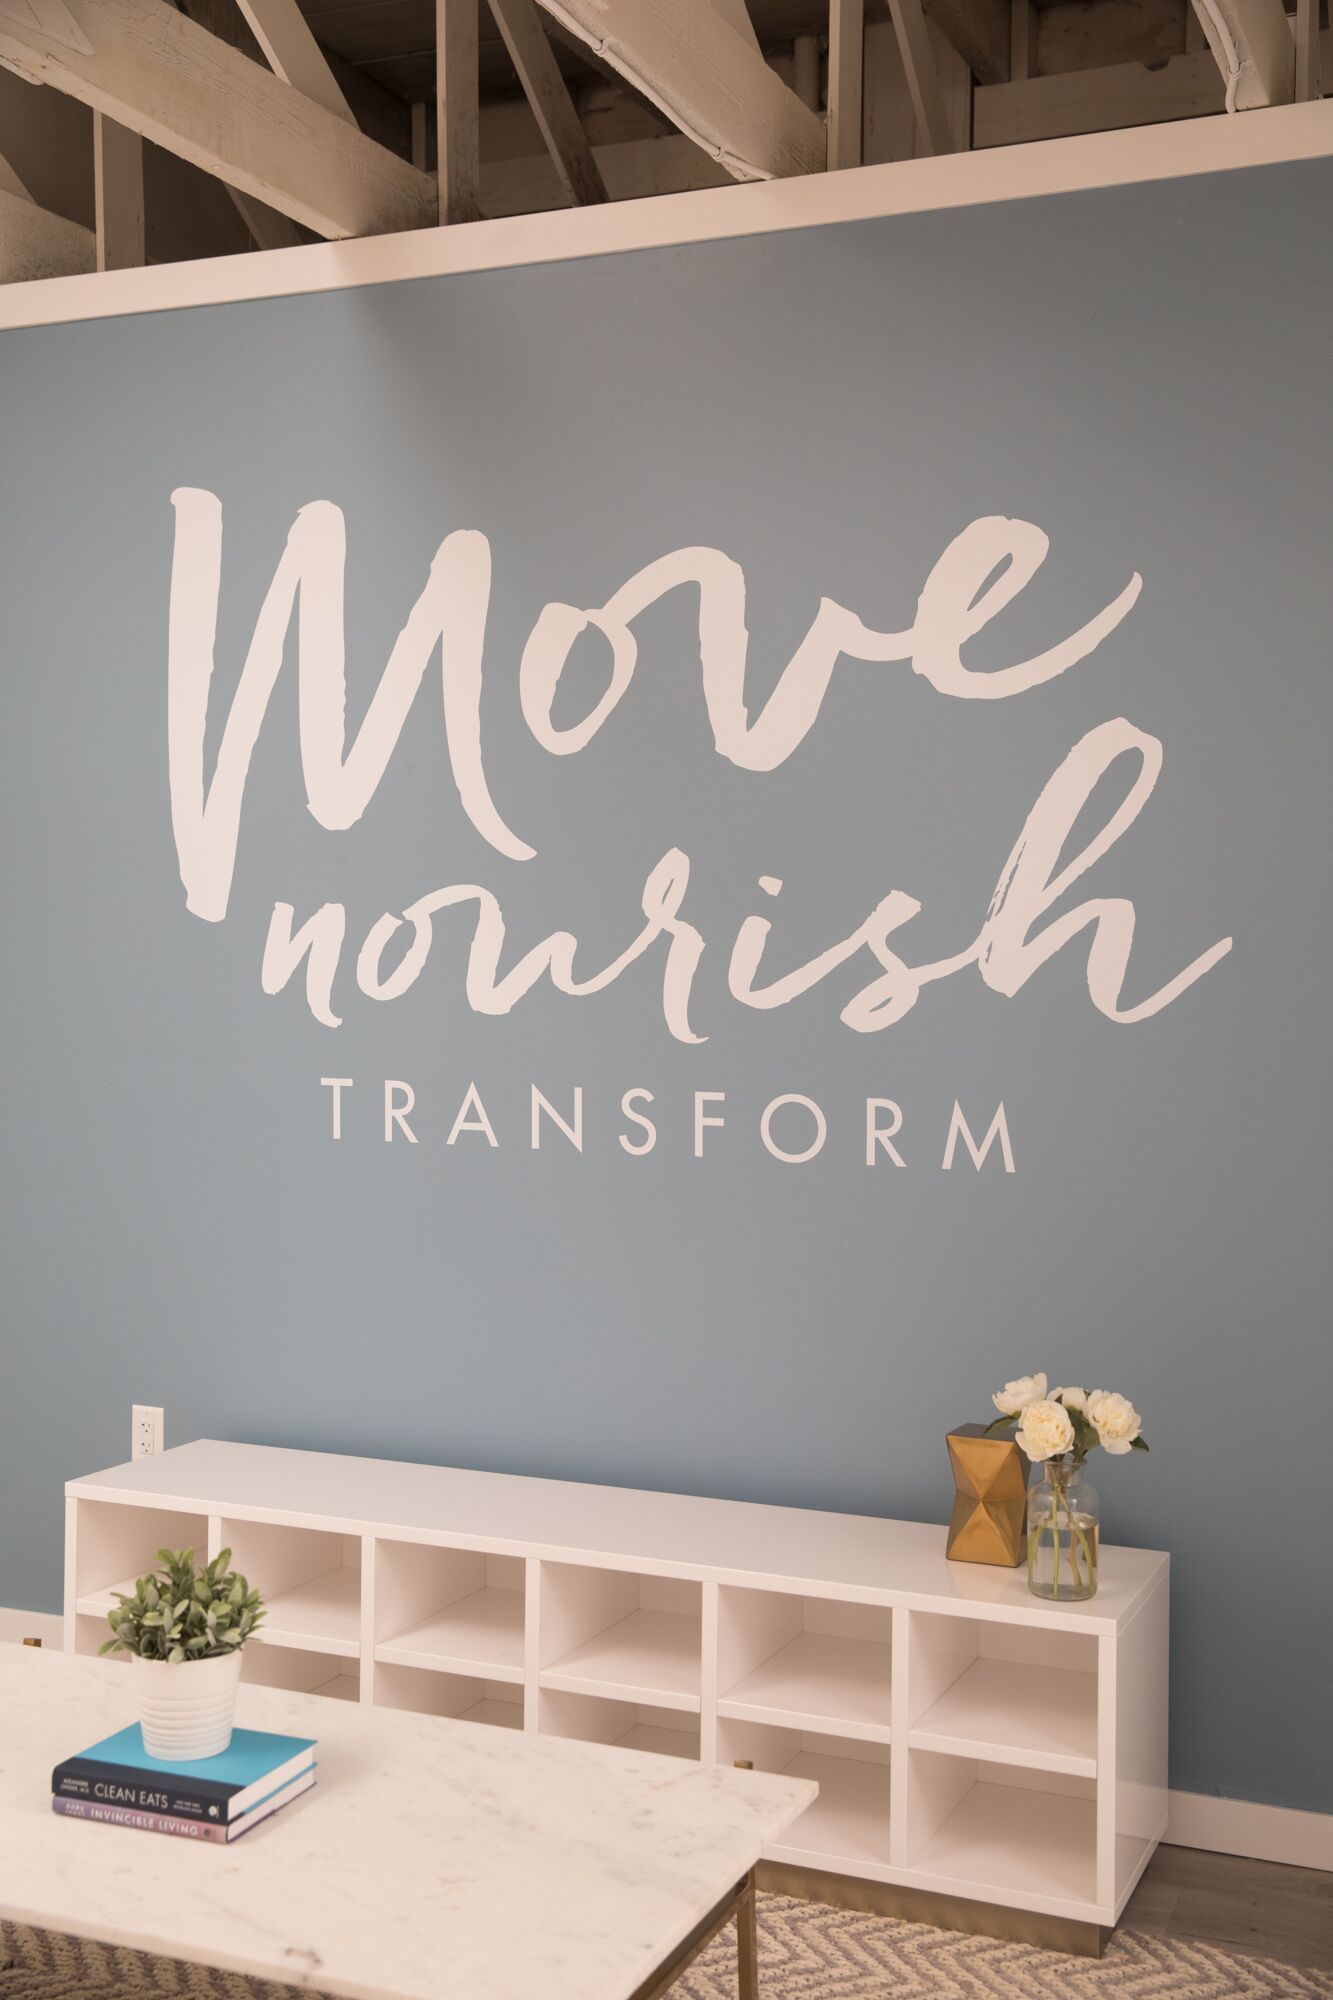 The fitness studio's mantra is move, nourish, transform